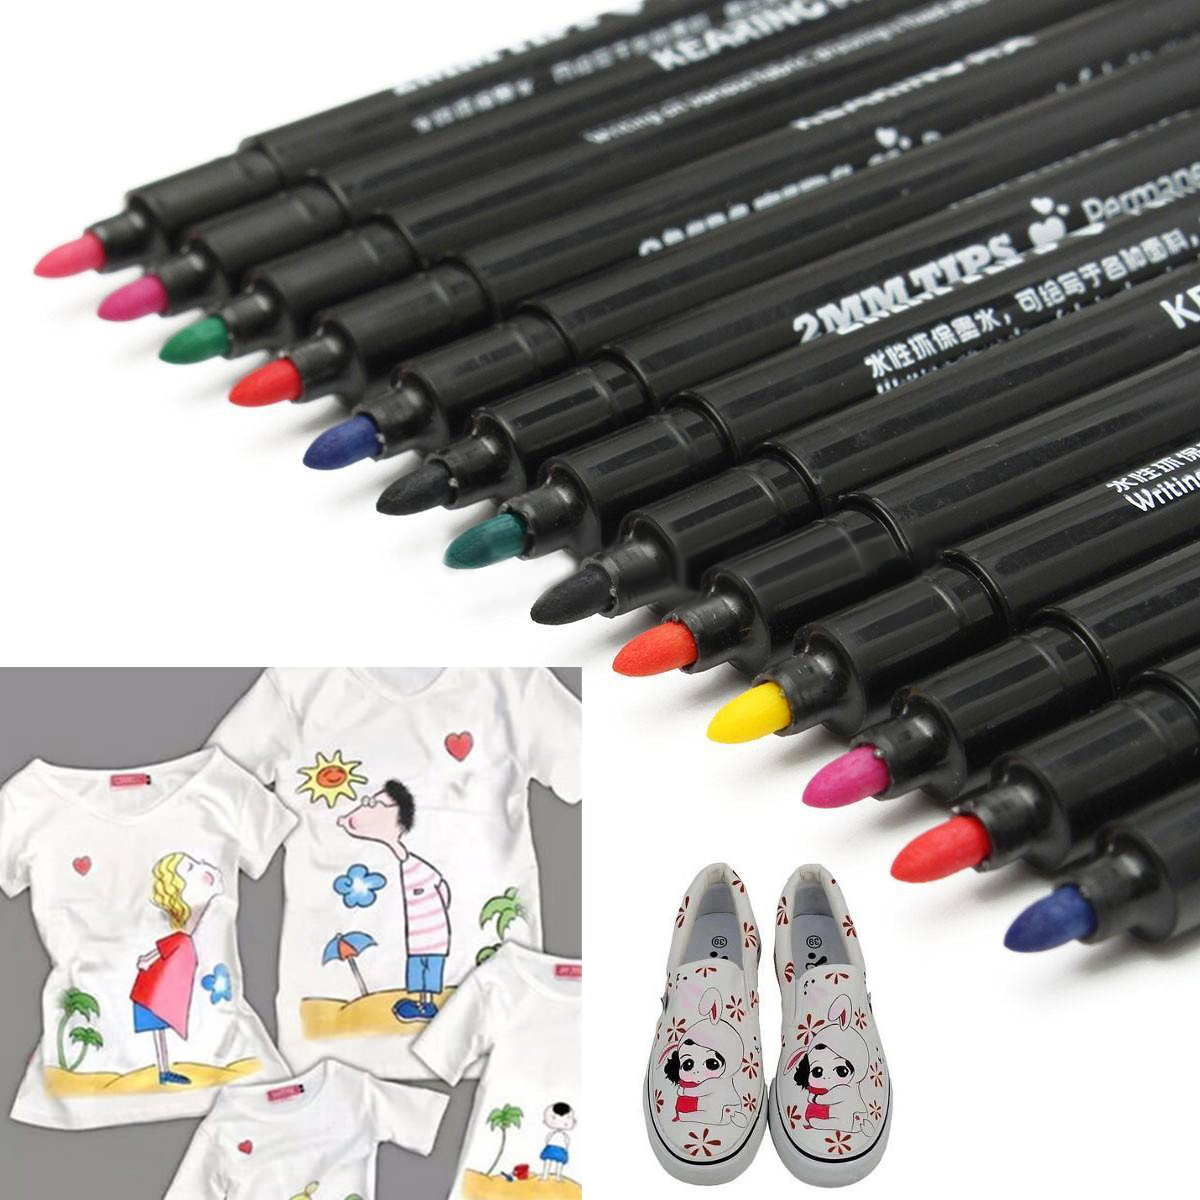 13pcs Fabric Marker Pens Permanent Paint Pens For DIY Textile Clothes T-Shirt Shoes Patchwork Crafts Sewing Accessories Mayitr